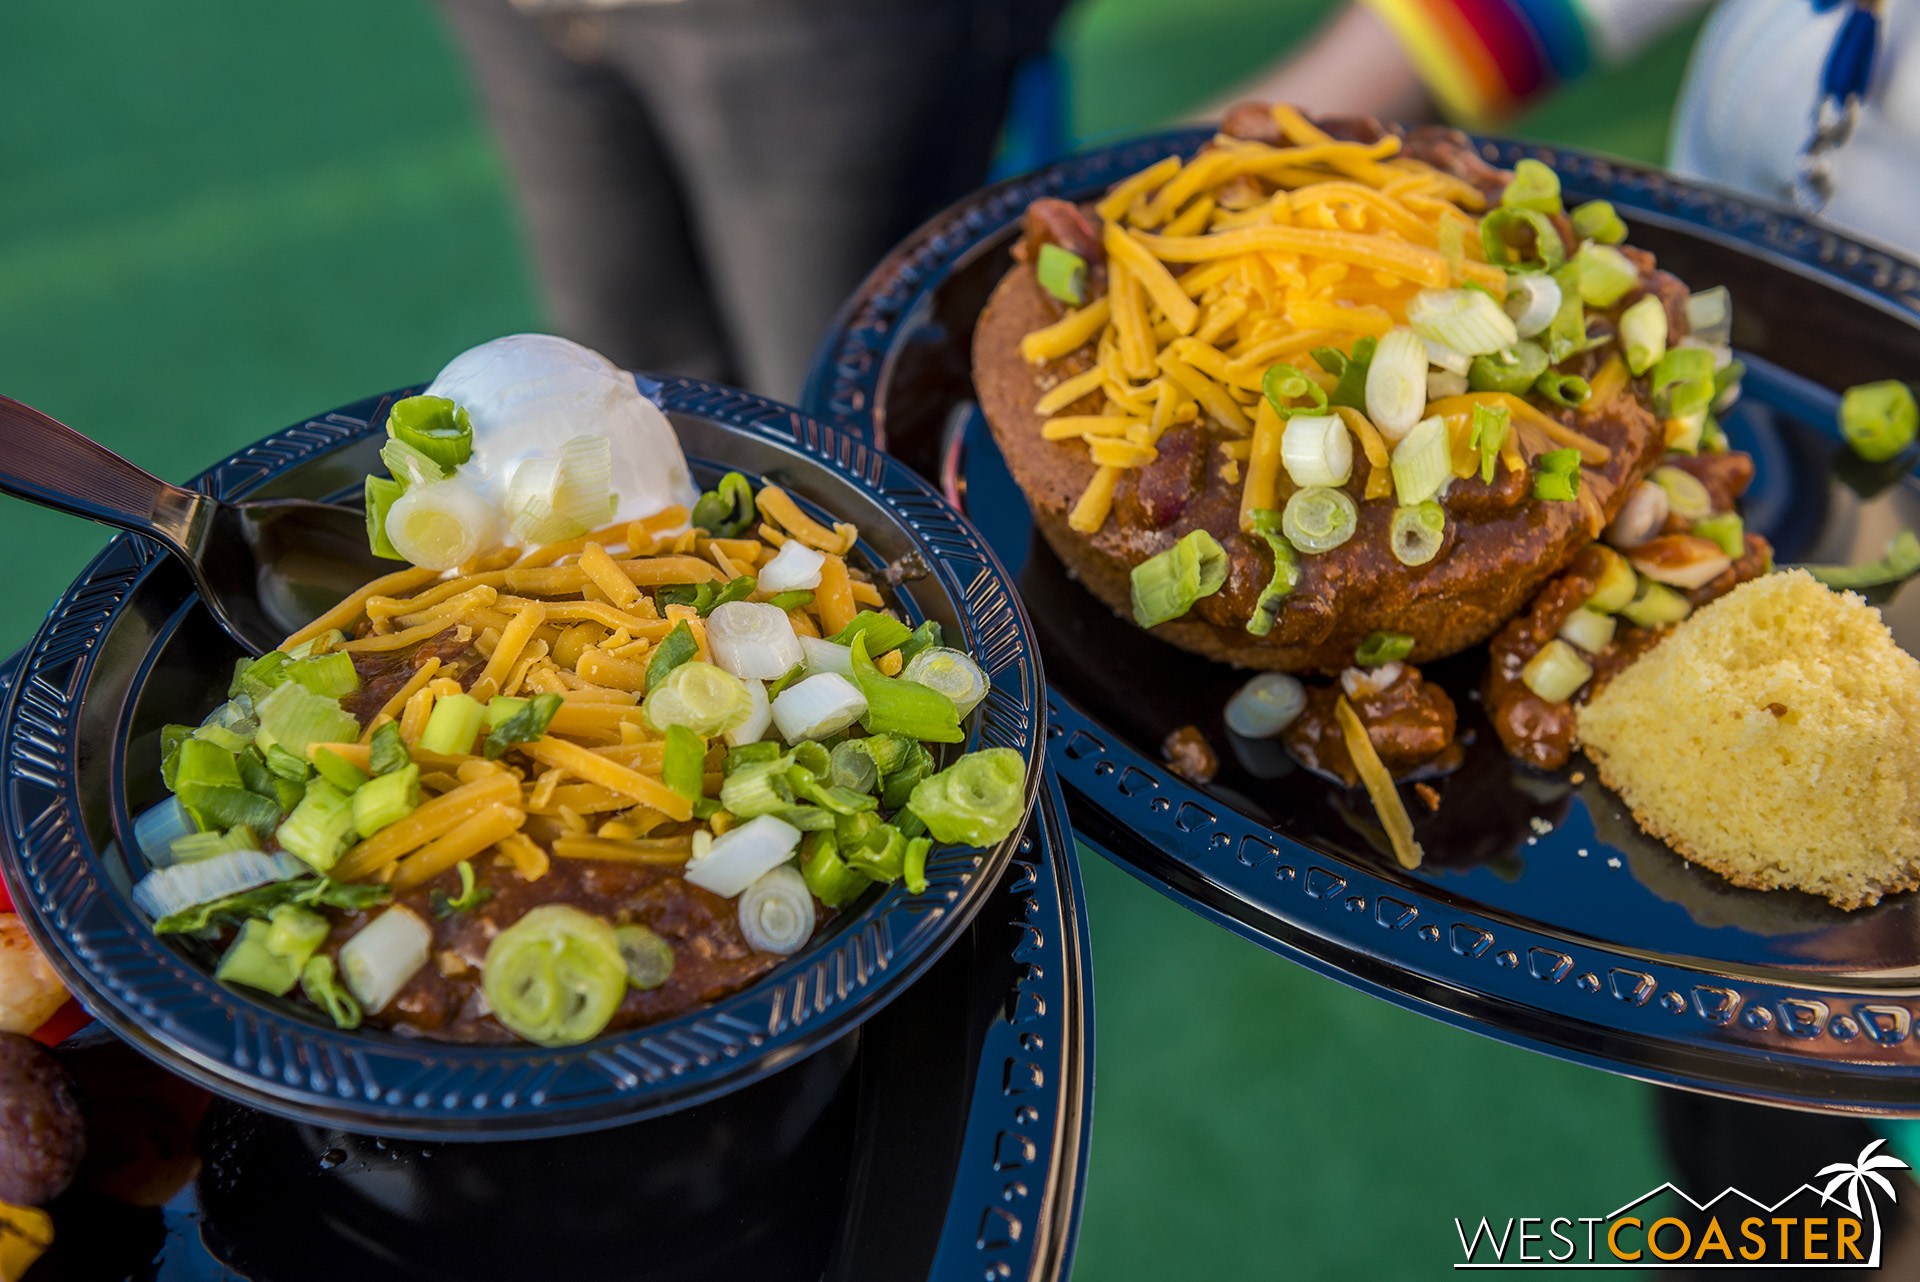 Chili over cornbread bowls or Fritos were very tasty too.  Another high recommendation.